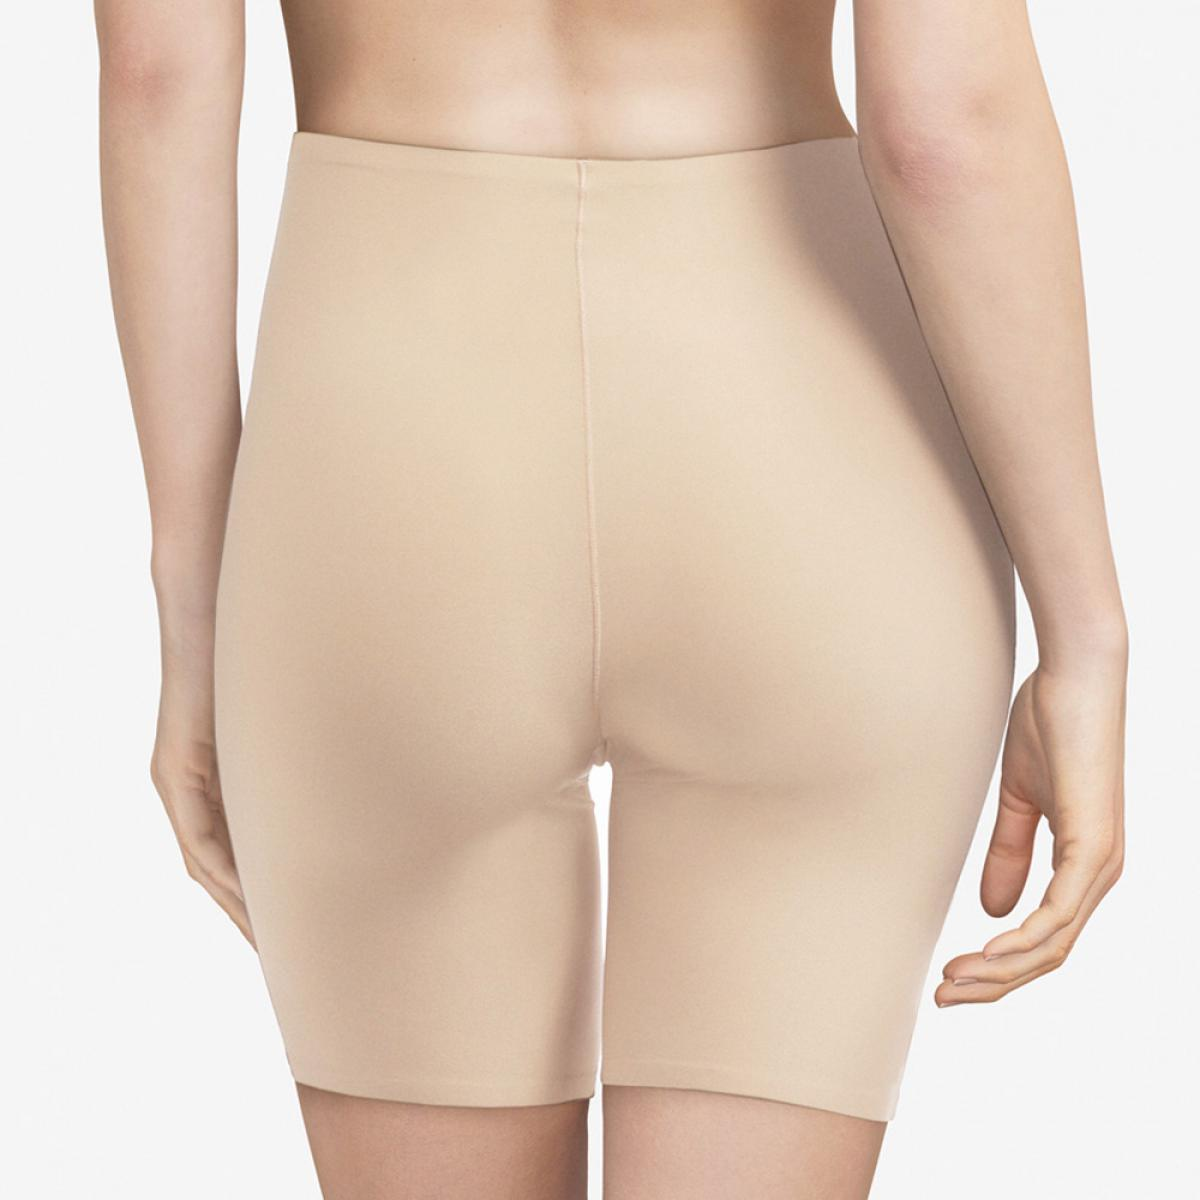 Panty Chantelle SOFT STRETCH nude